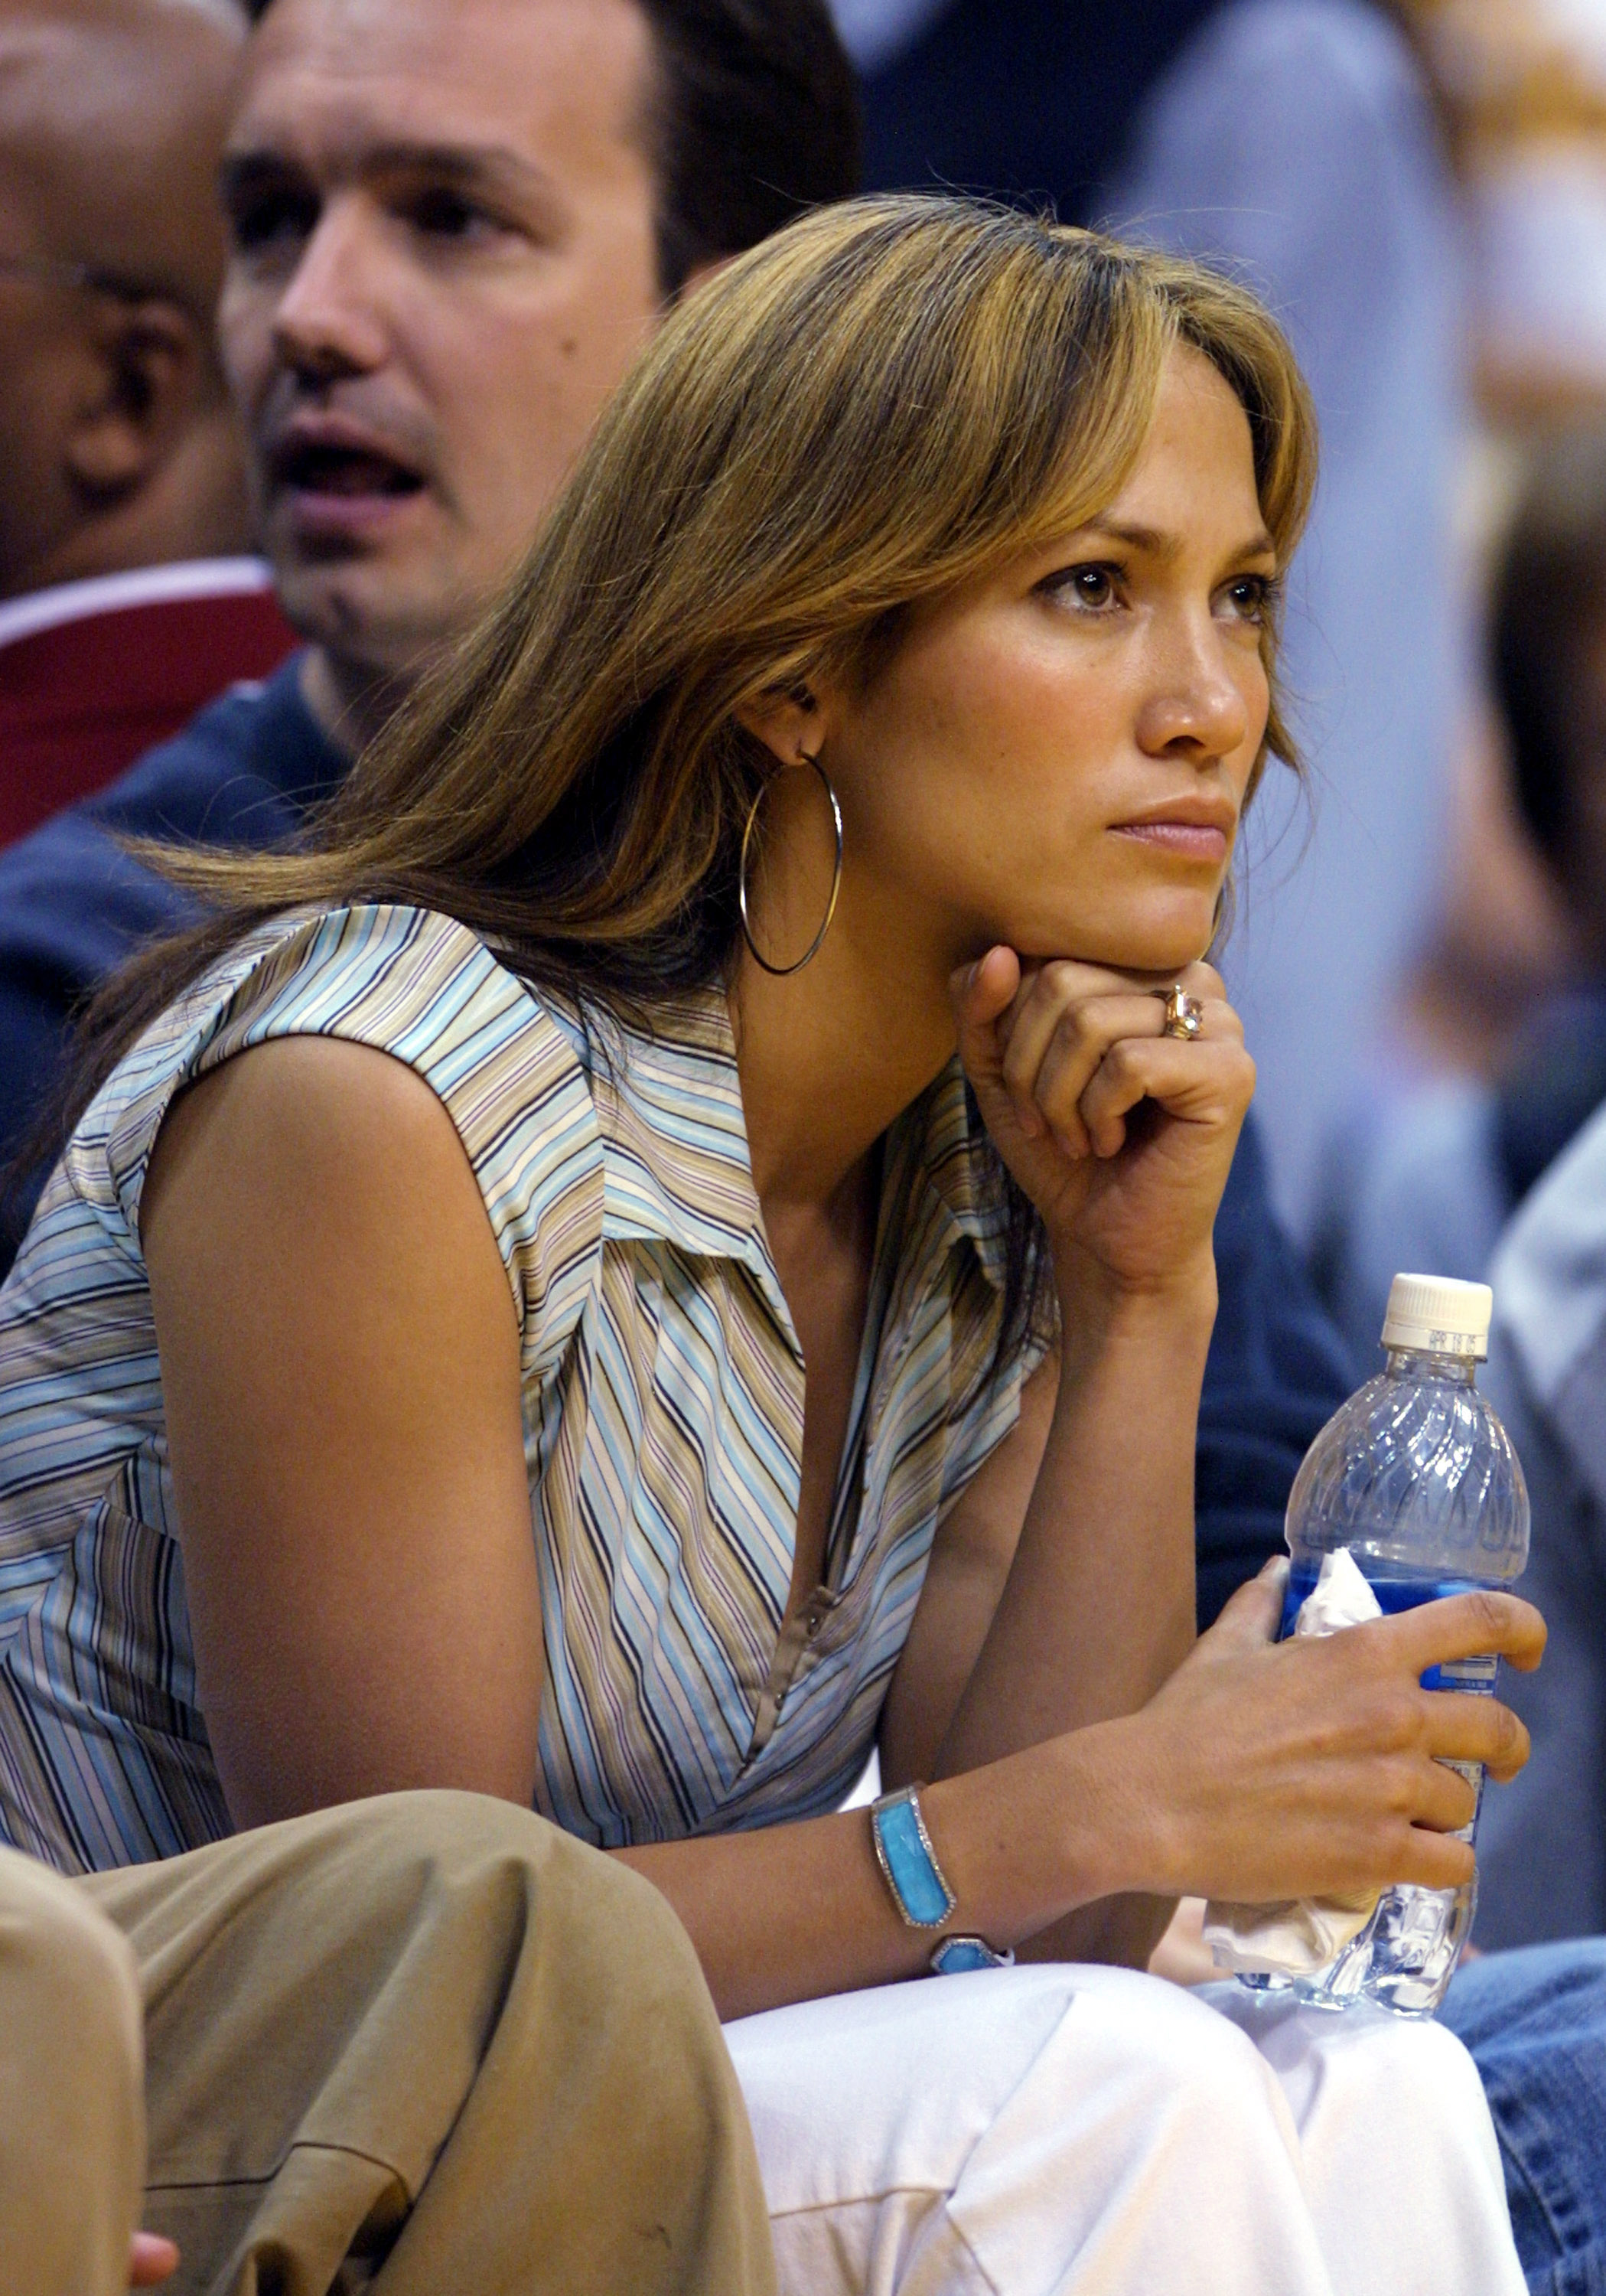 Jennifer Lopez and Ben Affleck Attend Lakers-Spurs Game 4 of Western Conference Semifinals